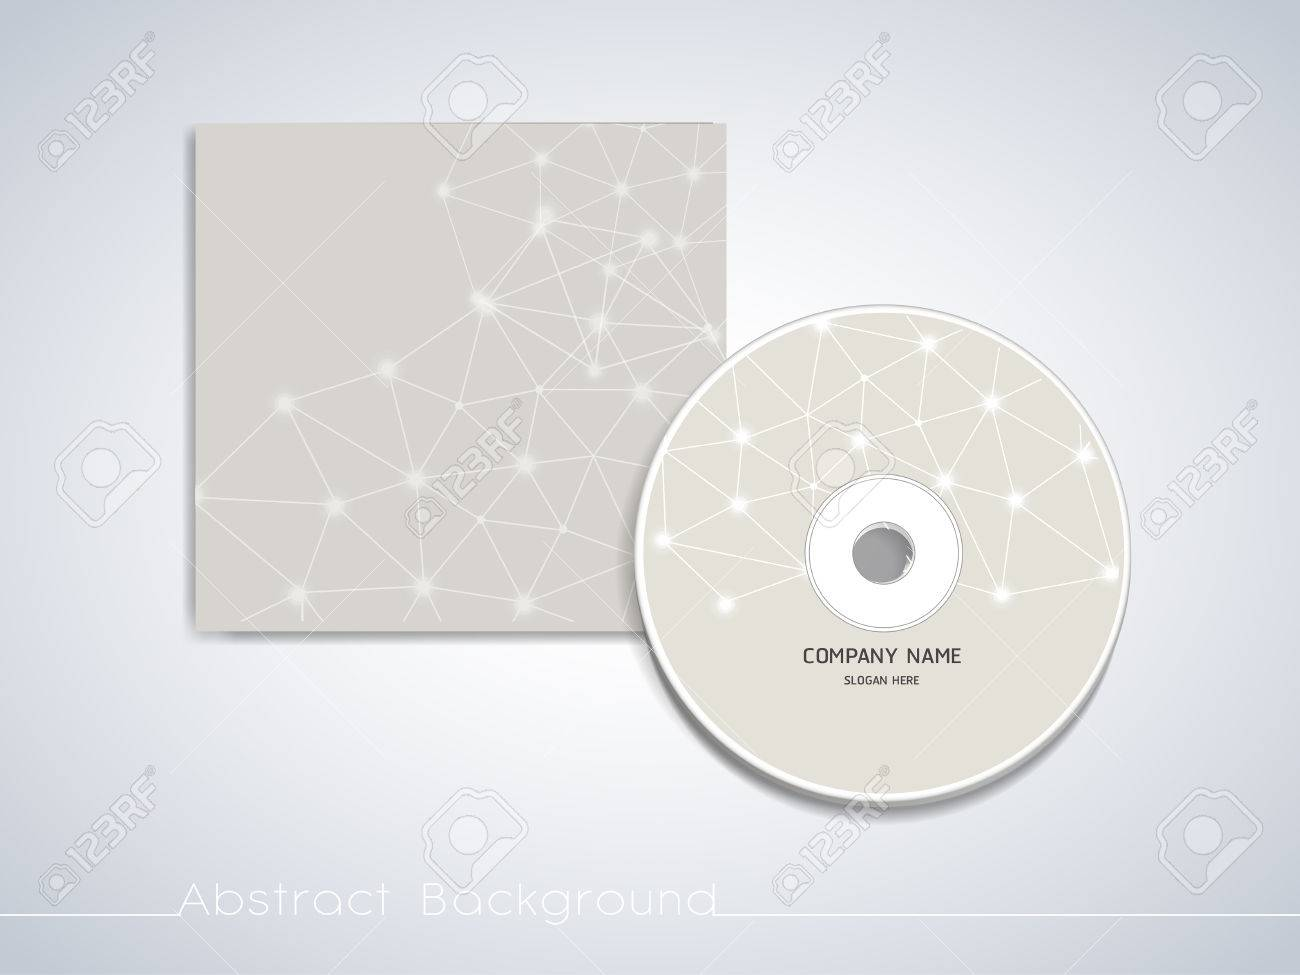 Cd Cover Template | Soft Geometric Background Design For Cd Cover Template Royalty Free